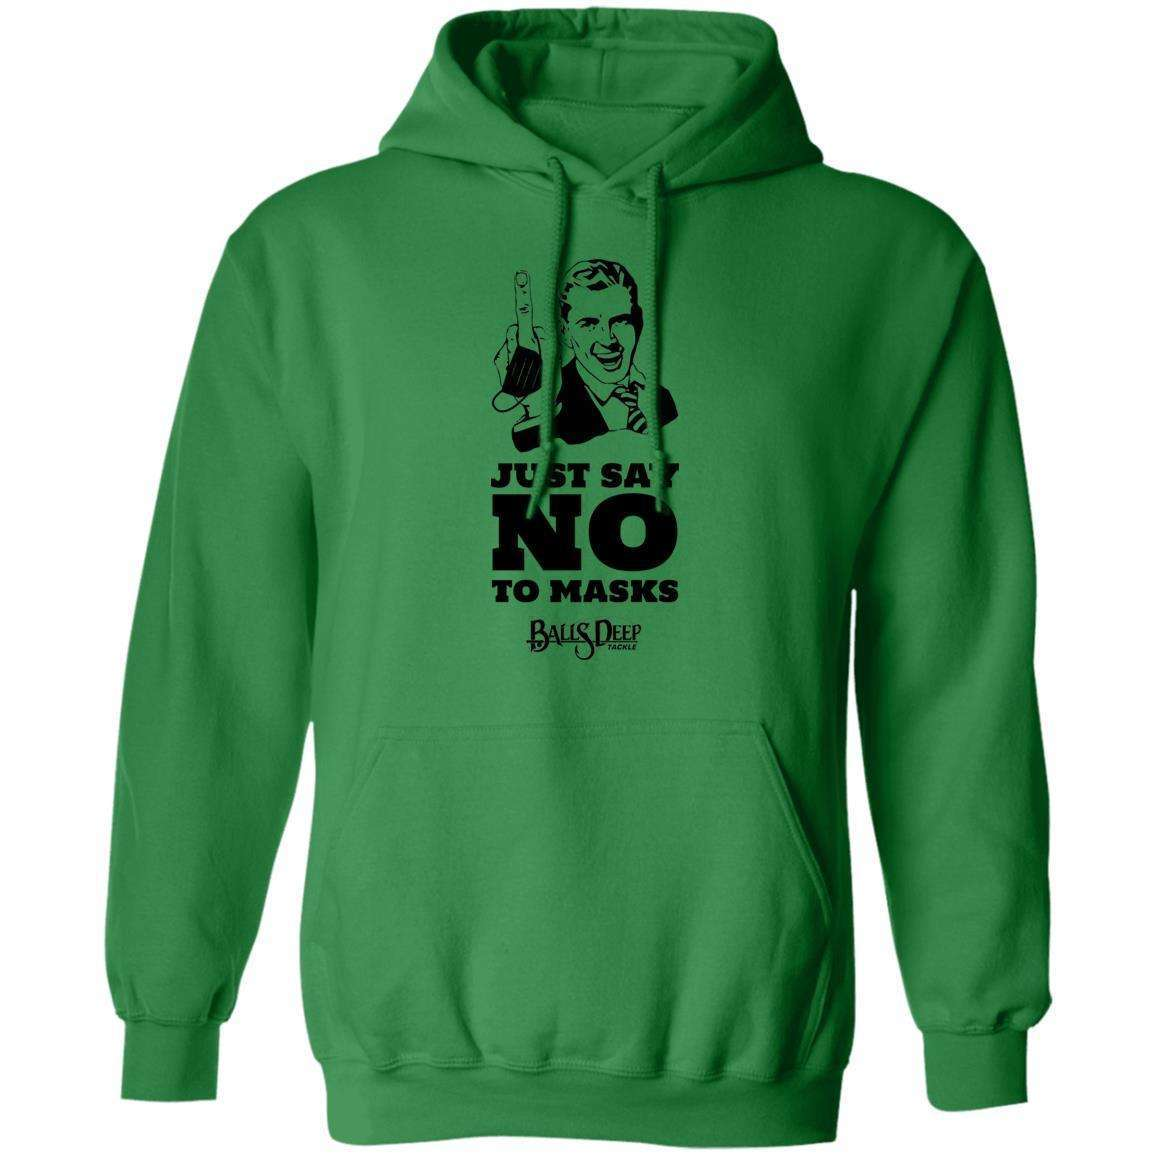 Just Say No To Masks Hoodie